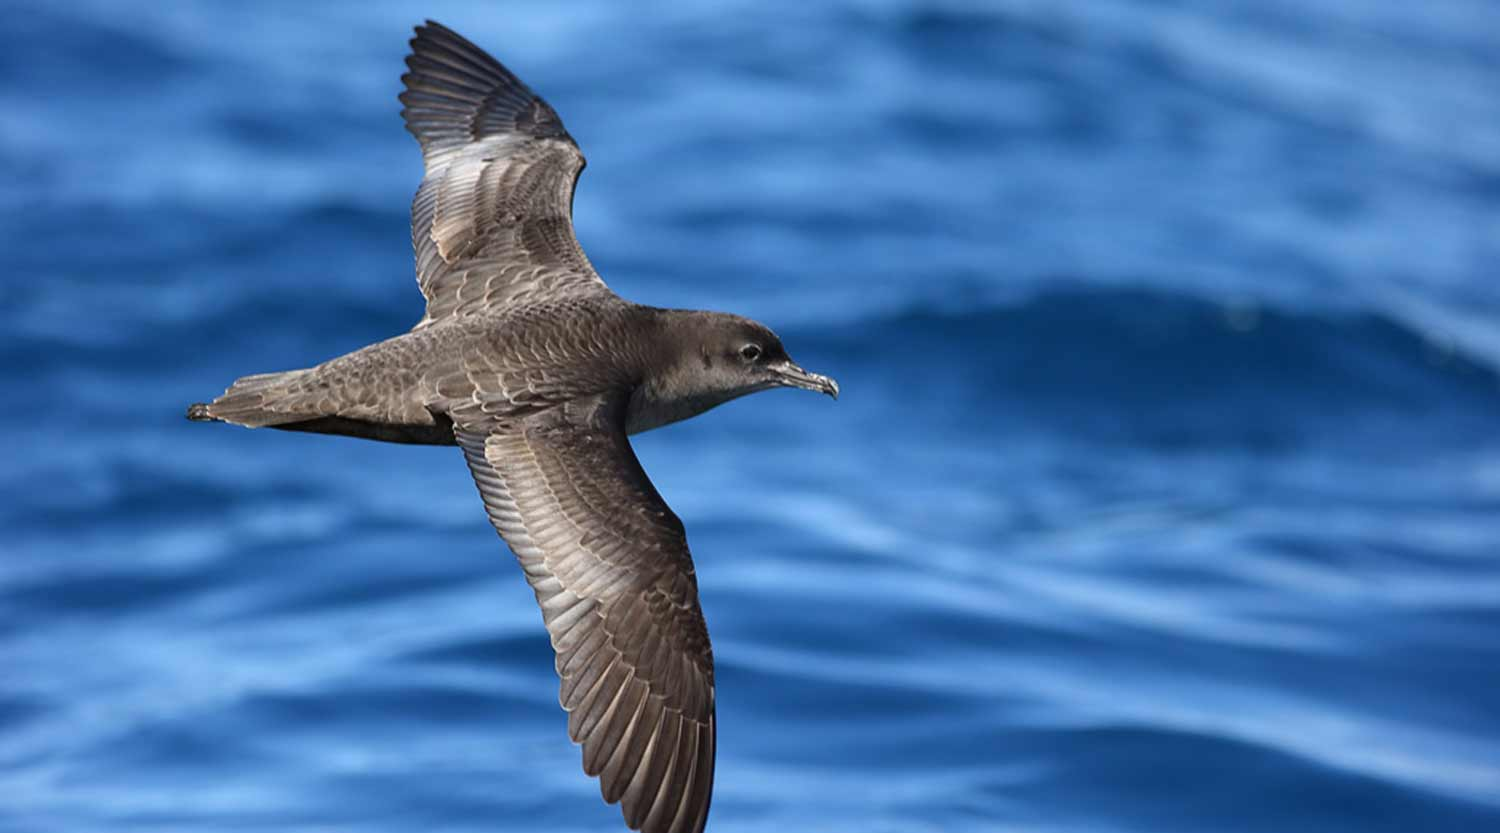 Short-tailed shearwater, Booderee National Park